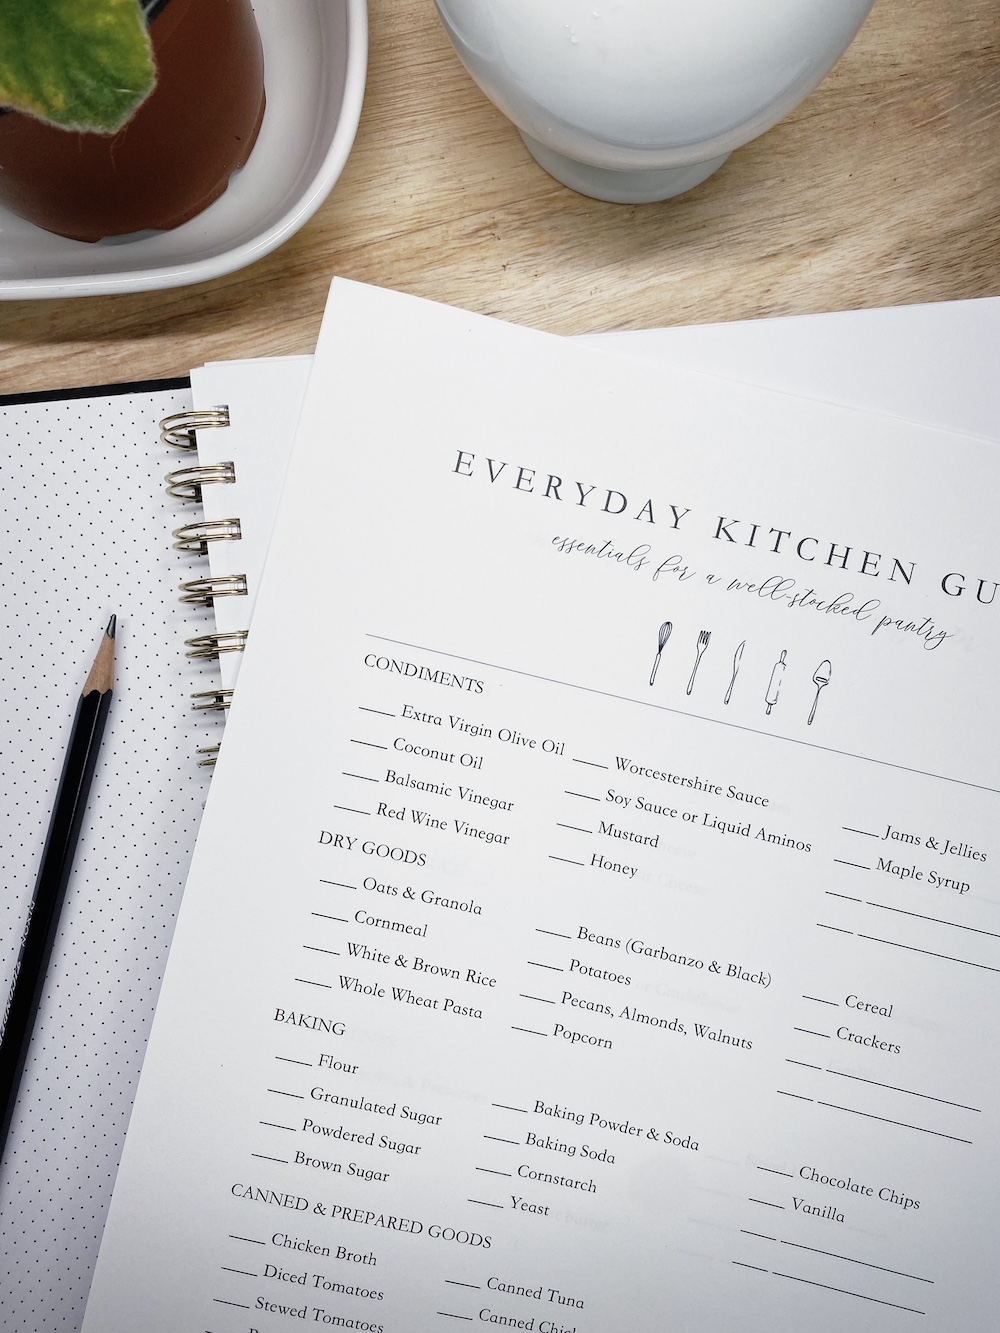 Everyday Kitchen Guide | Fresh Wanderings